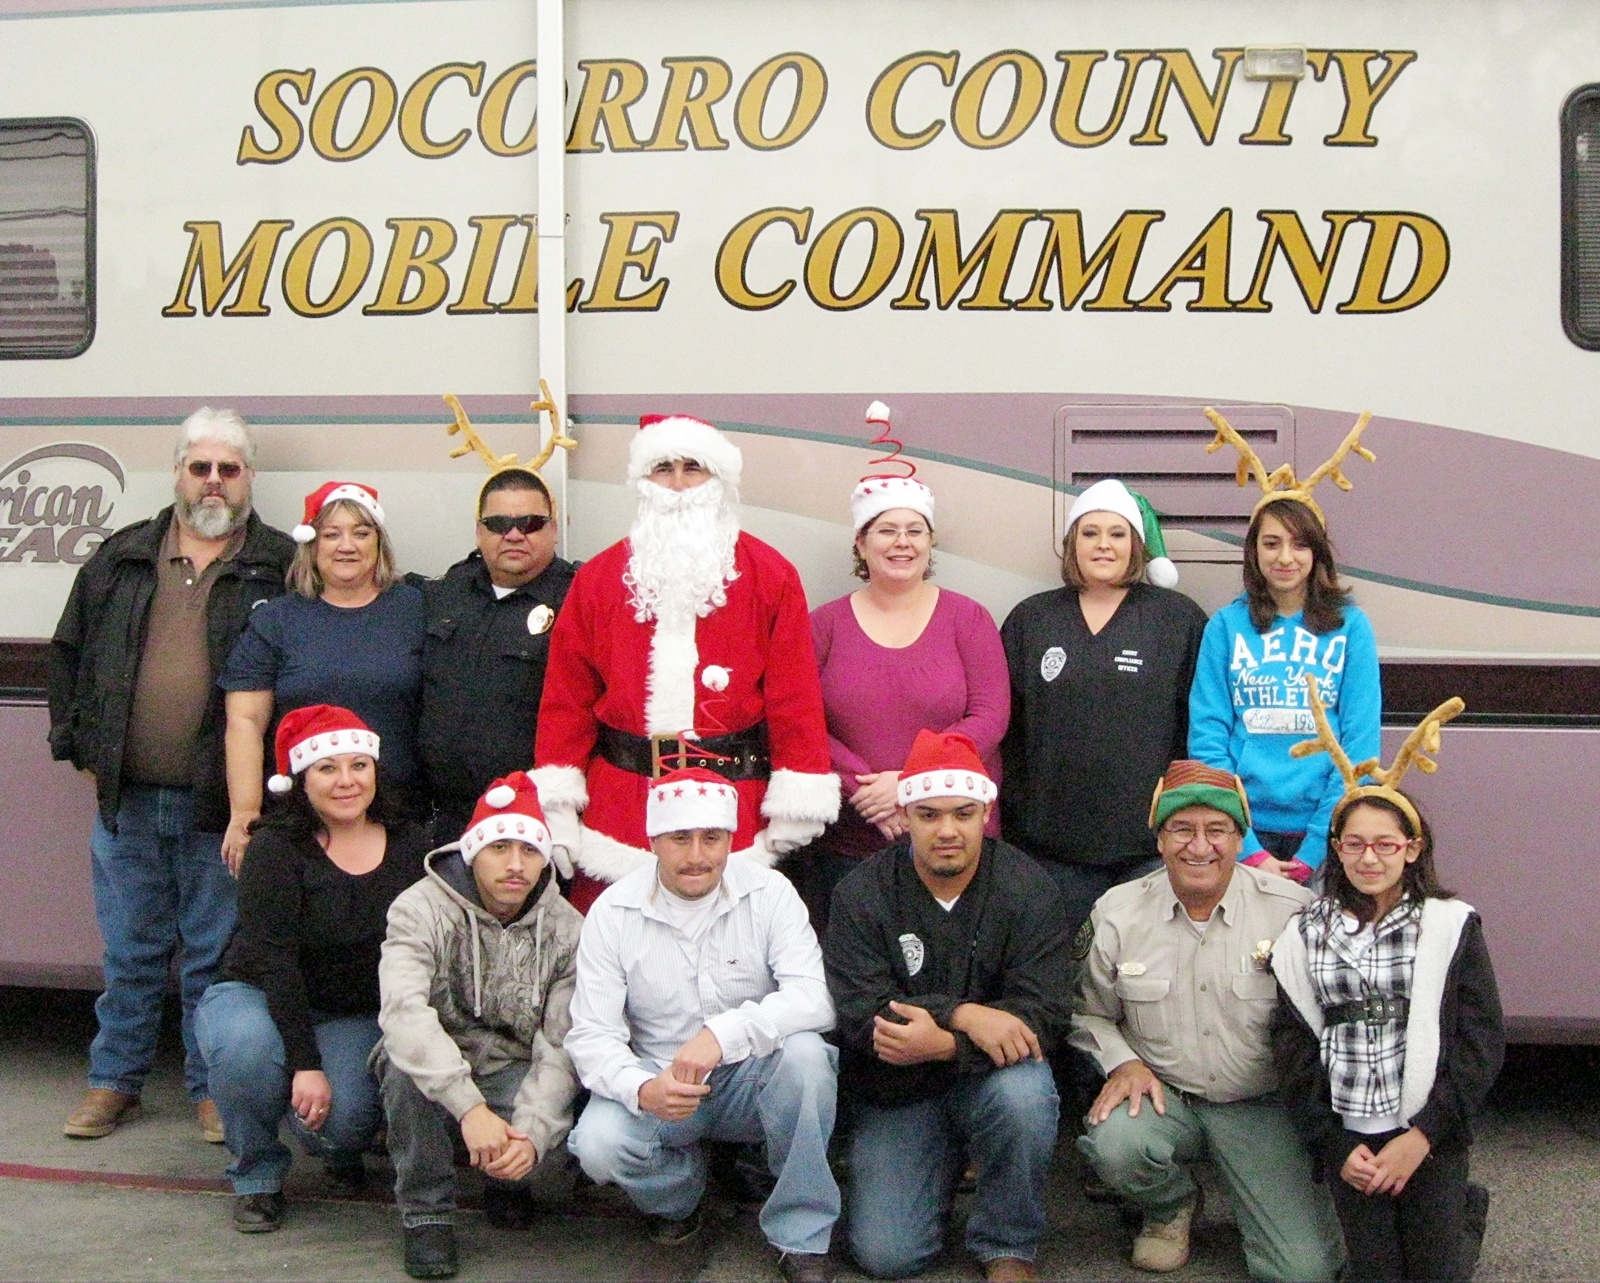 New mexico socorro county magdalena -  Elves And Reindeer From The Socorro County Sheriff S Dept Socorro County Emergency Services And Socorro City Police Helped Santa Claus Deliver An Early